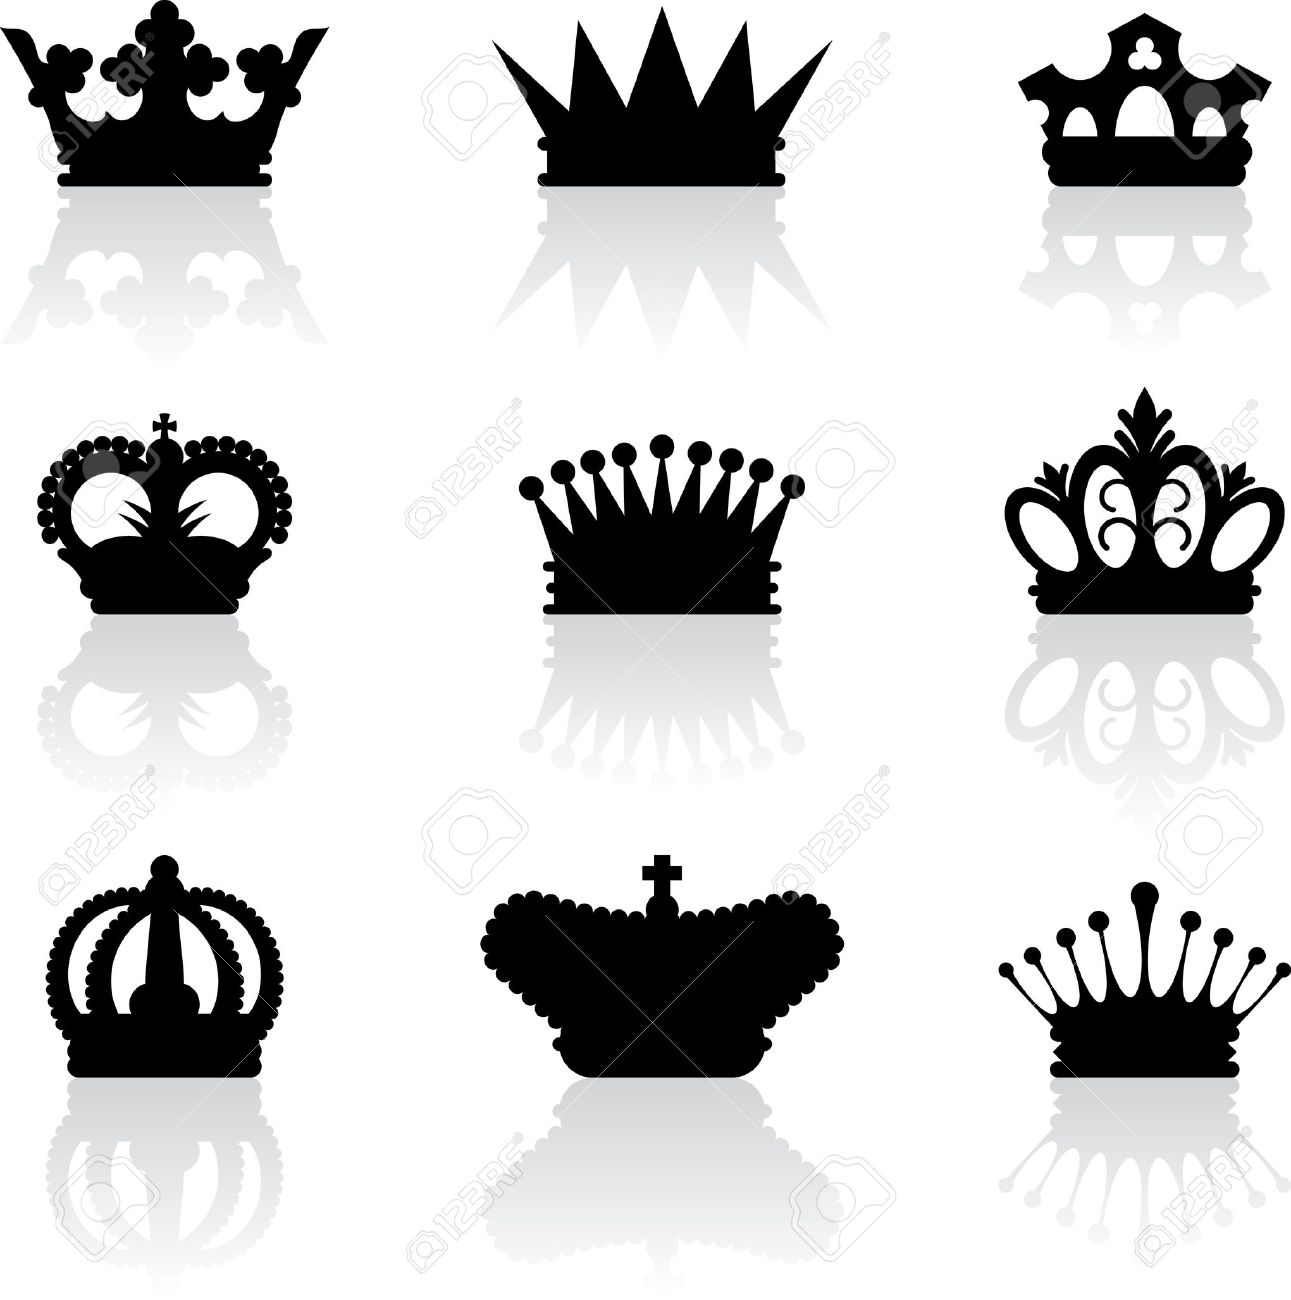 king crown stock photos royalty free king crown images and pictures